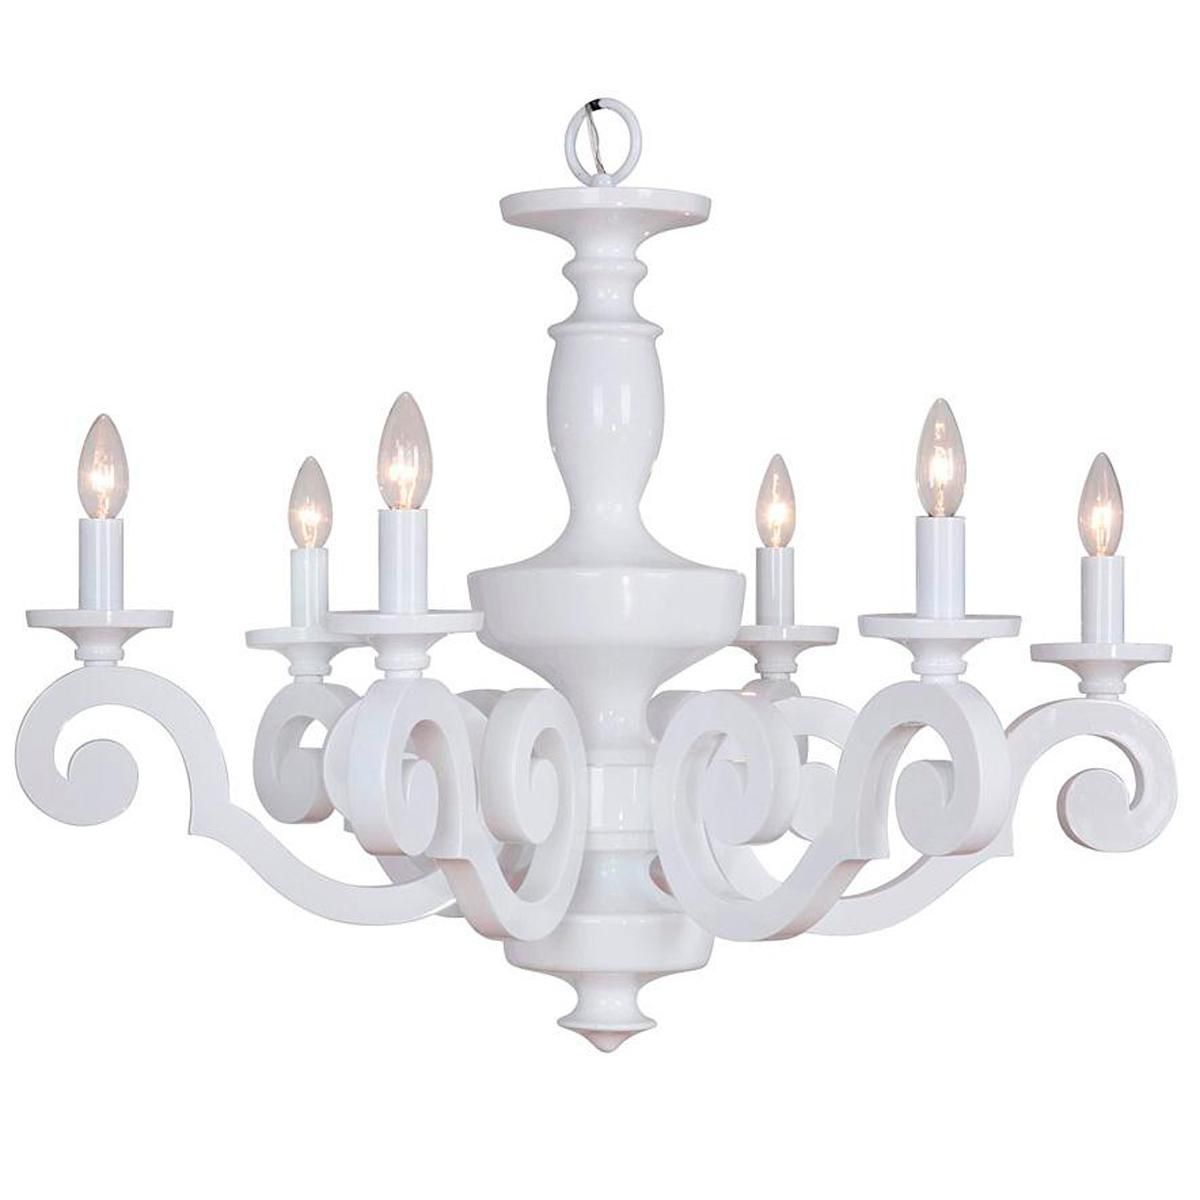 Glossy scroll arm chandelier 6 light chandeliers arms and lights glossy scroll arm chandelier 6 light arubaitofo Image collections